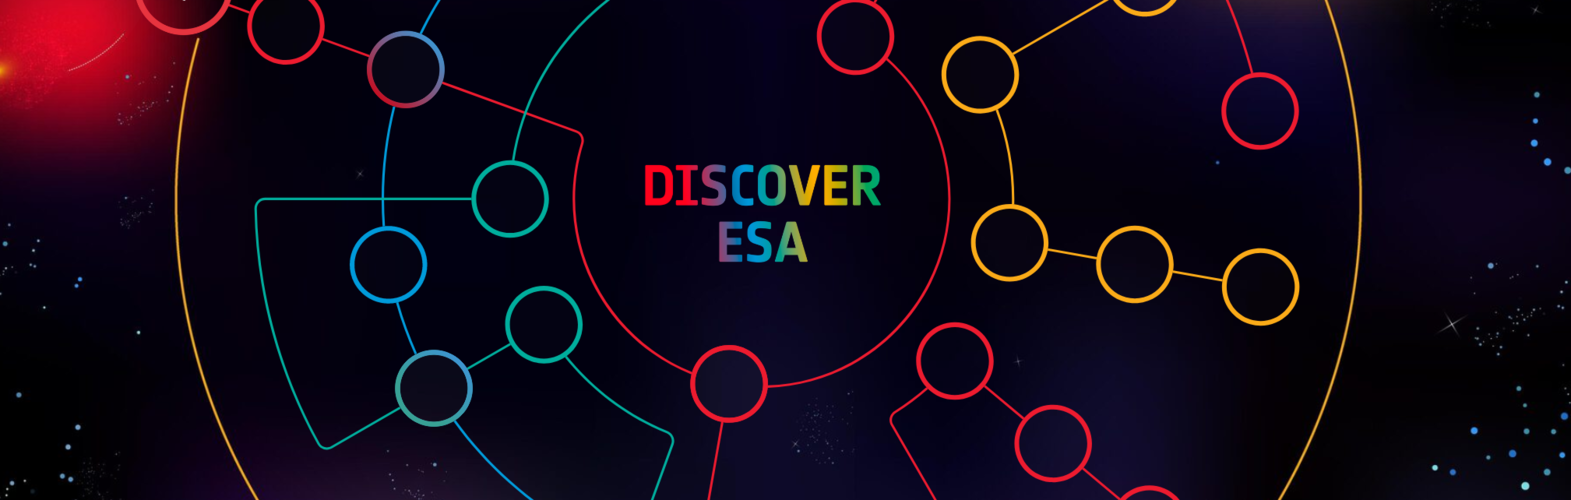 Visit ESA virtually with new Discover ESA platform